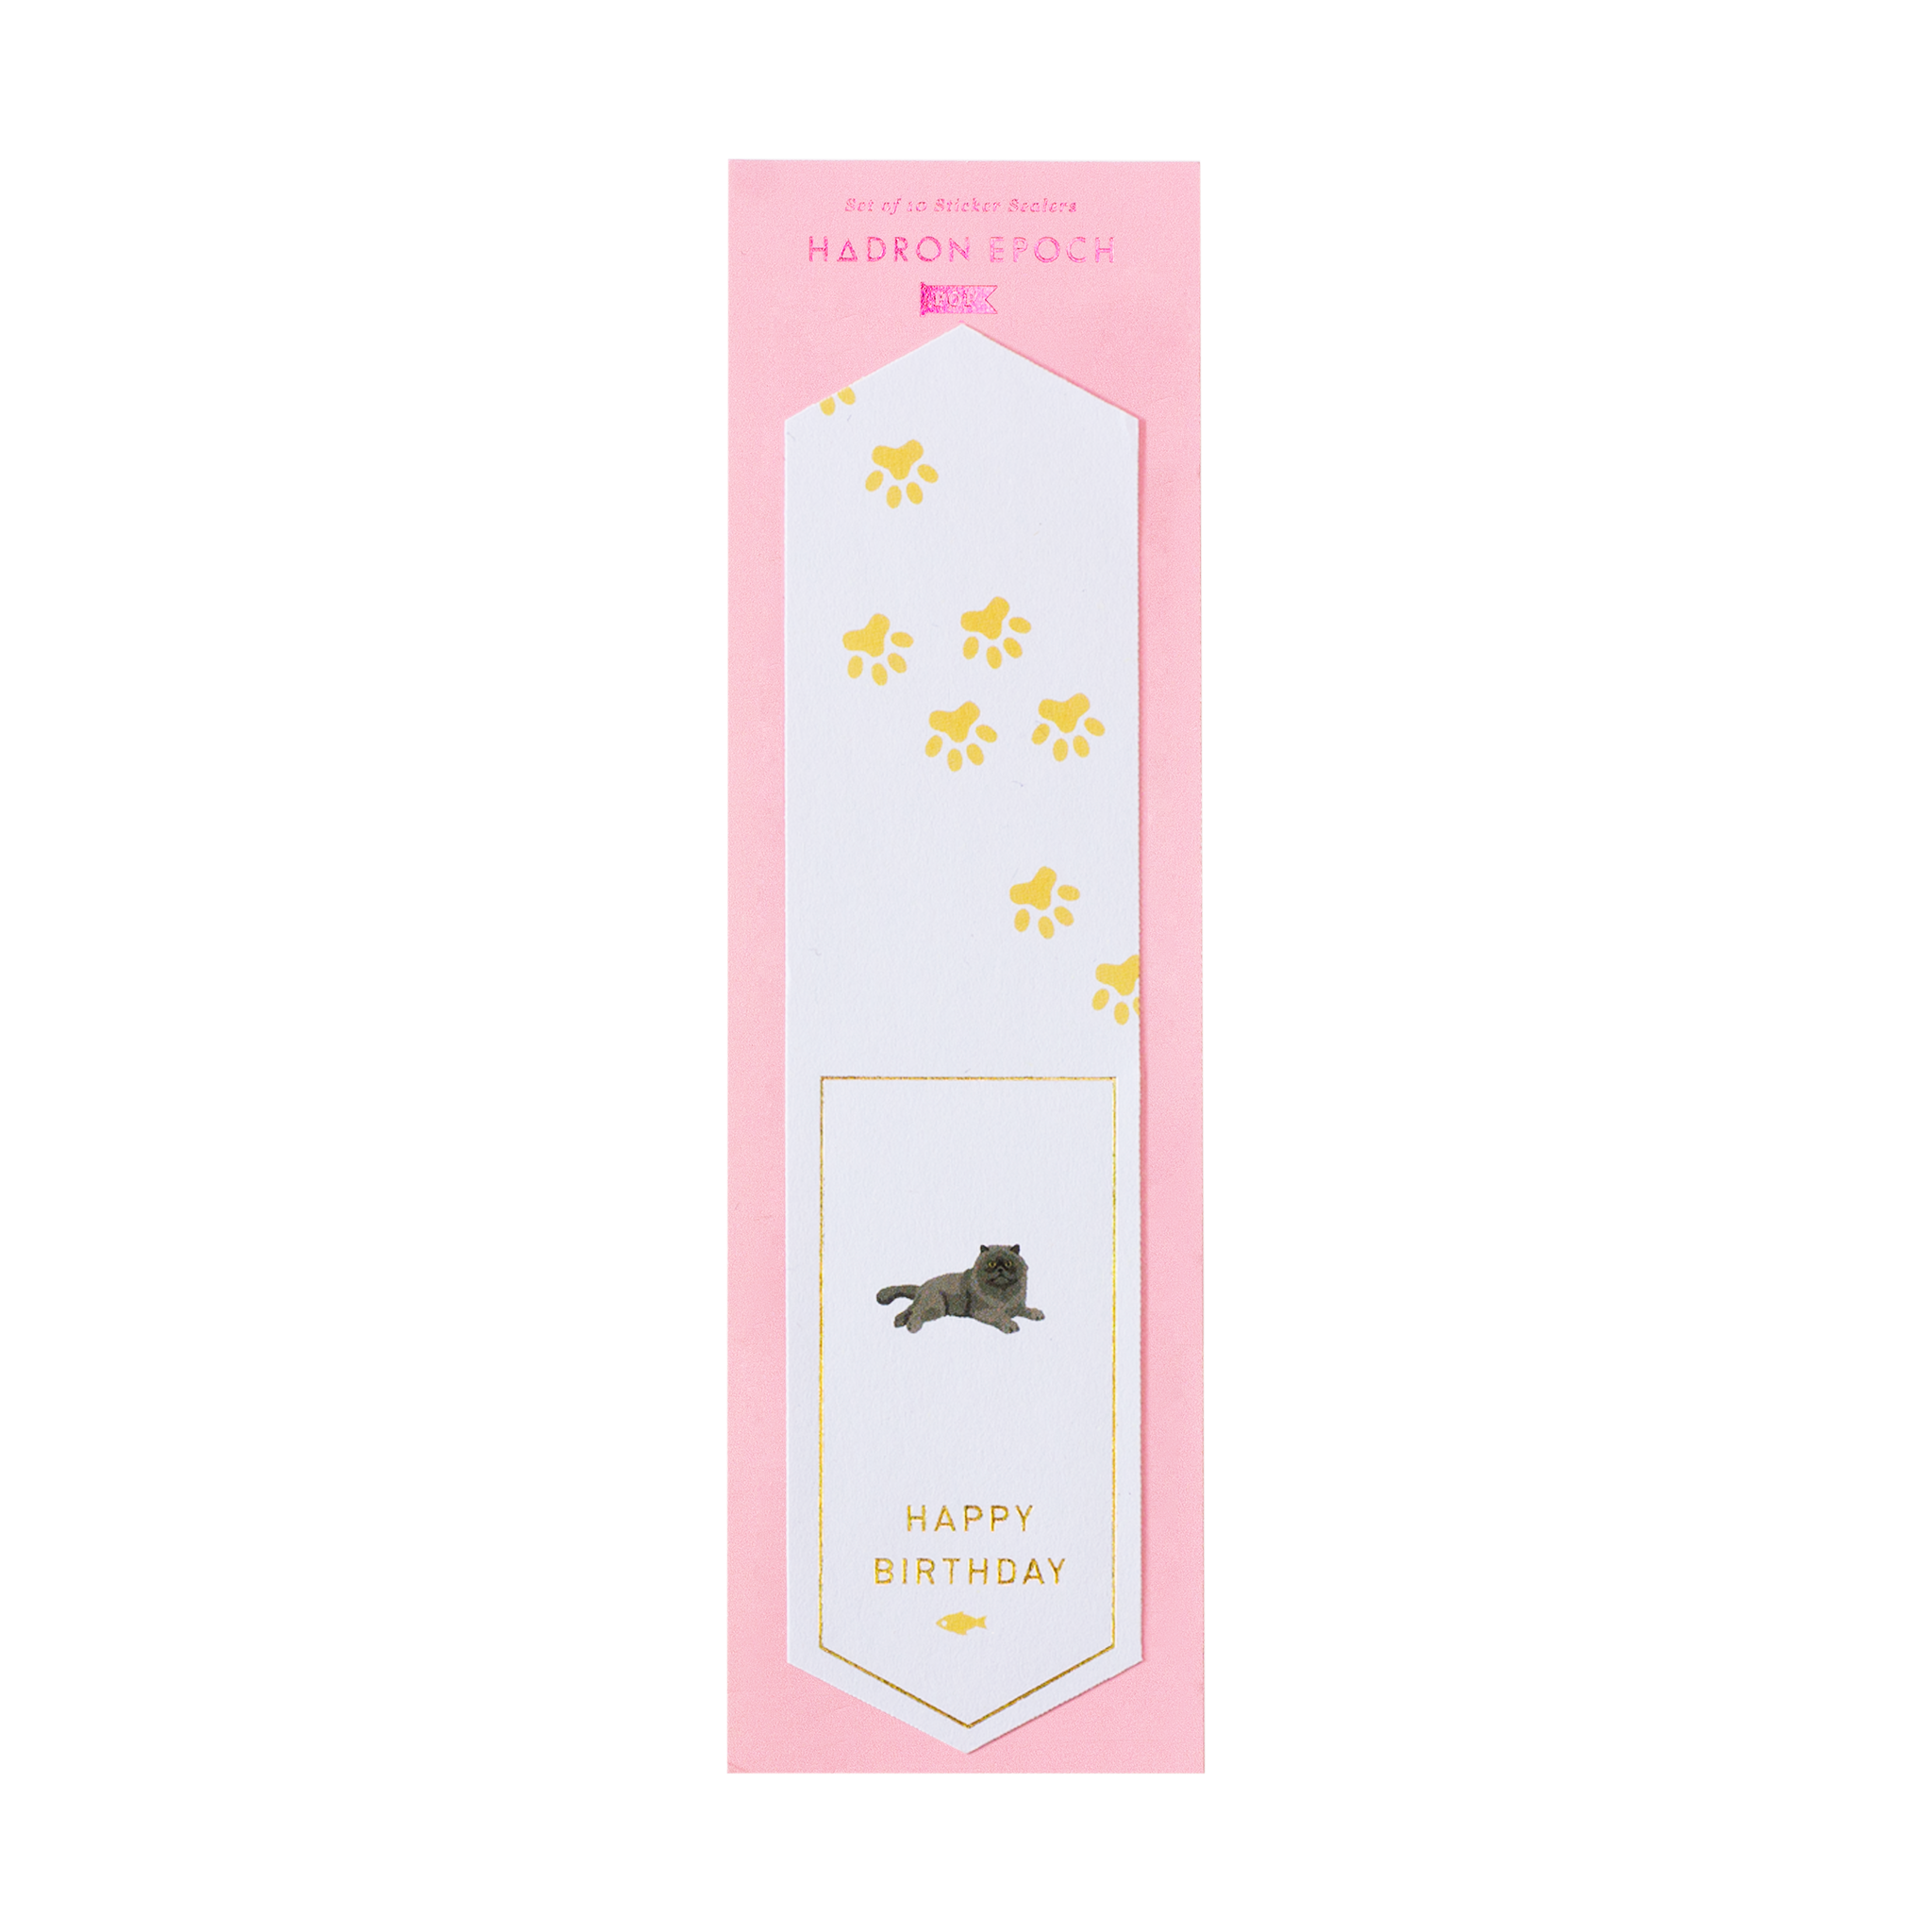 STICKER GIFT SEALERS - MEOW MEOW - Hadron Epoch